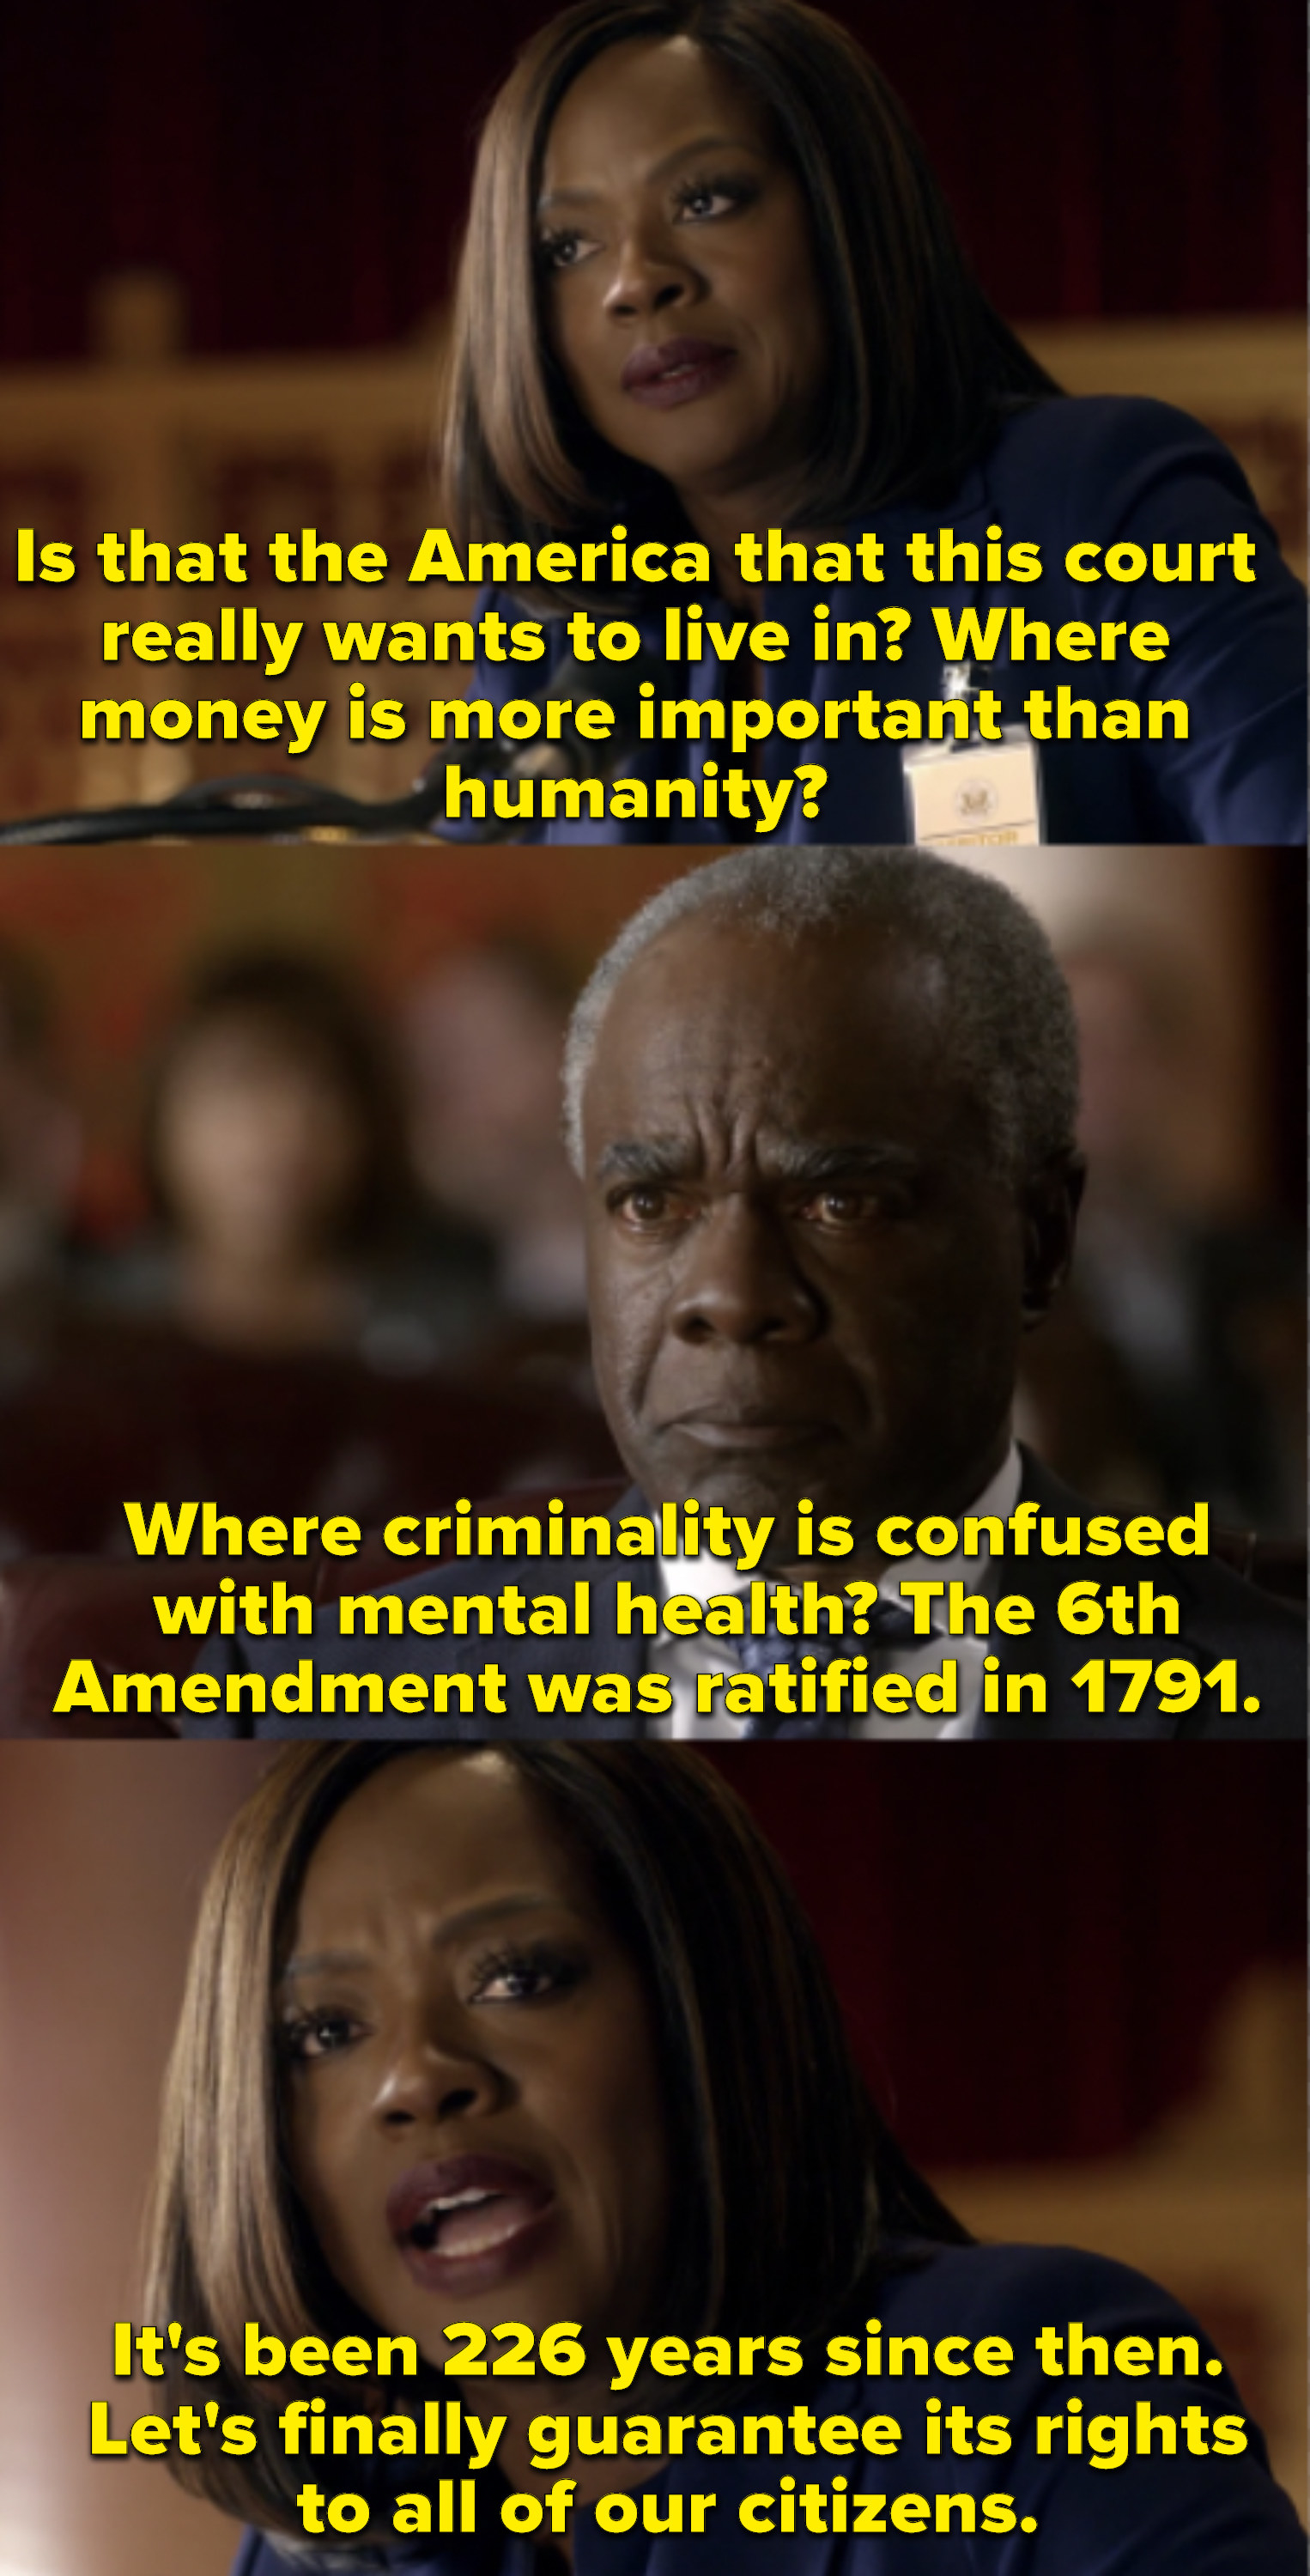 Annalise asks the court if the court really wants to live in an America where money is prized above humanity and criminality is confused with mental health, then says the 6th amendment was ratified in 1791 and all citizens should have rights